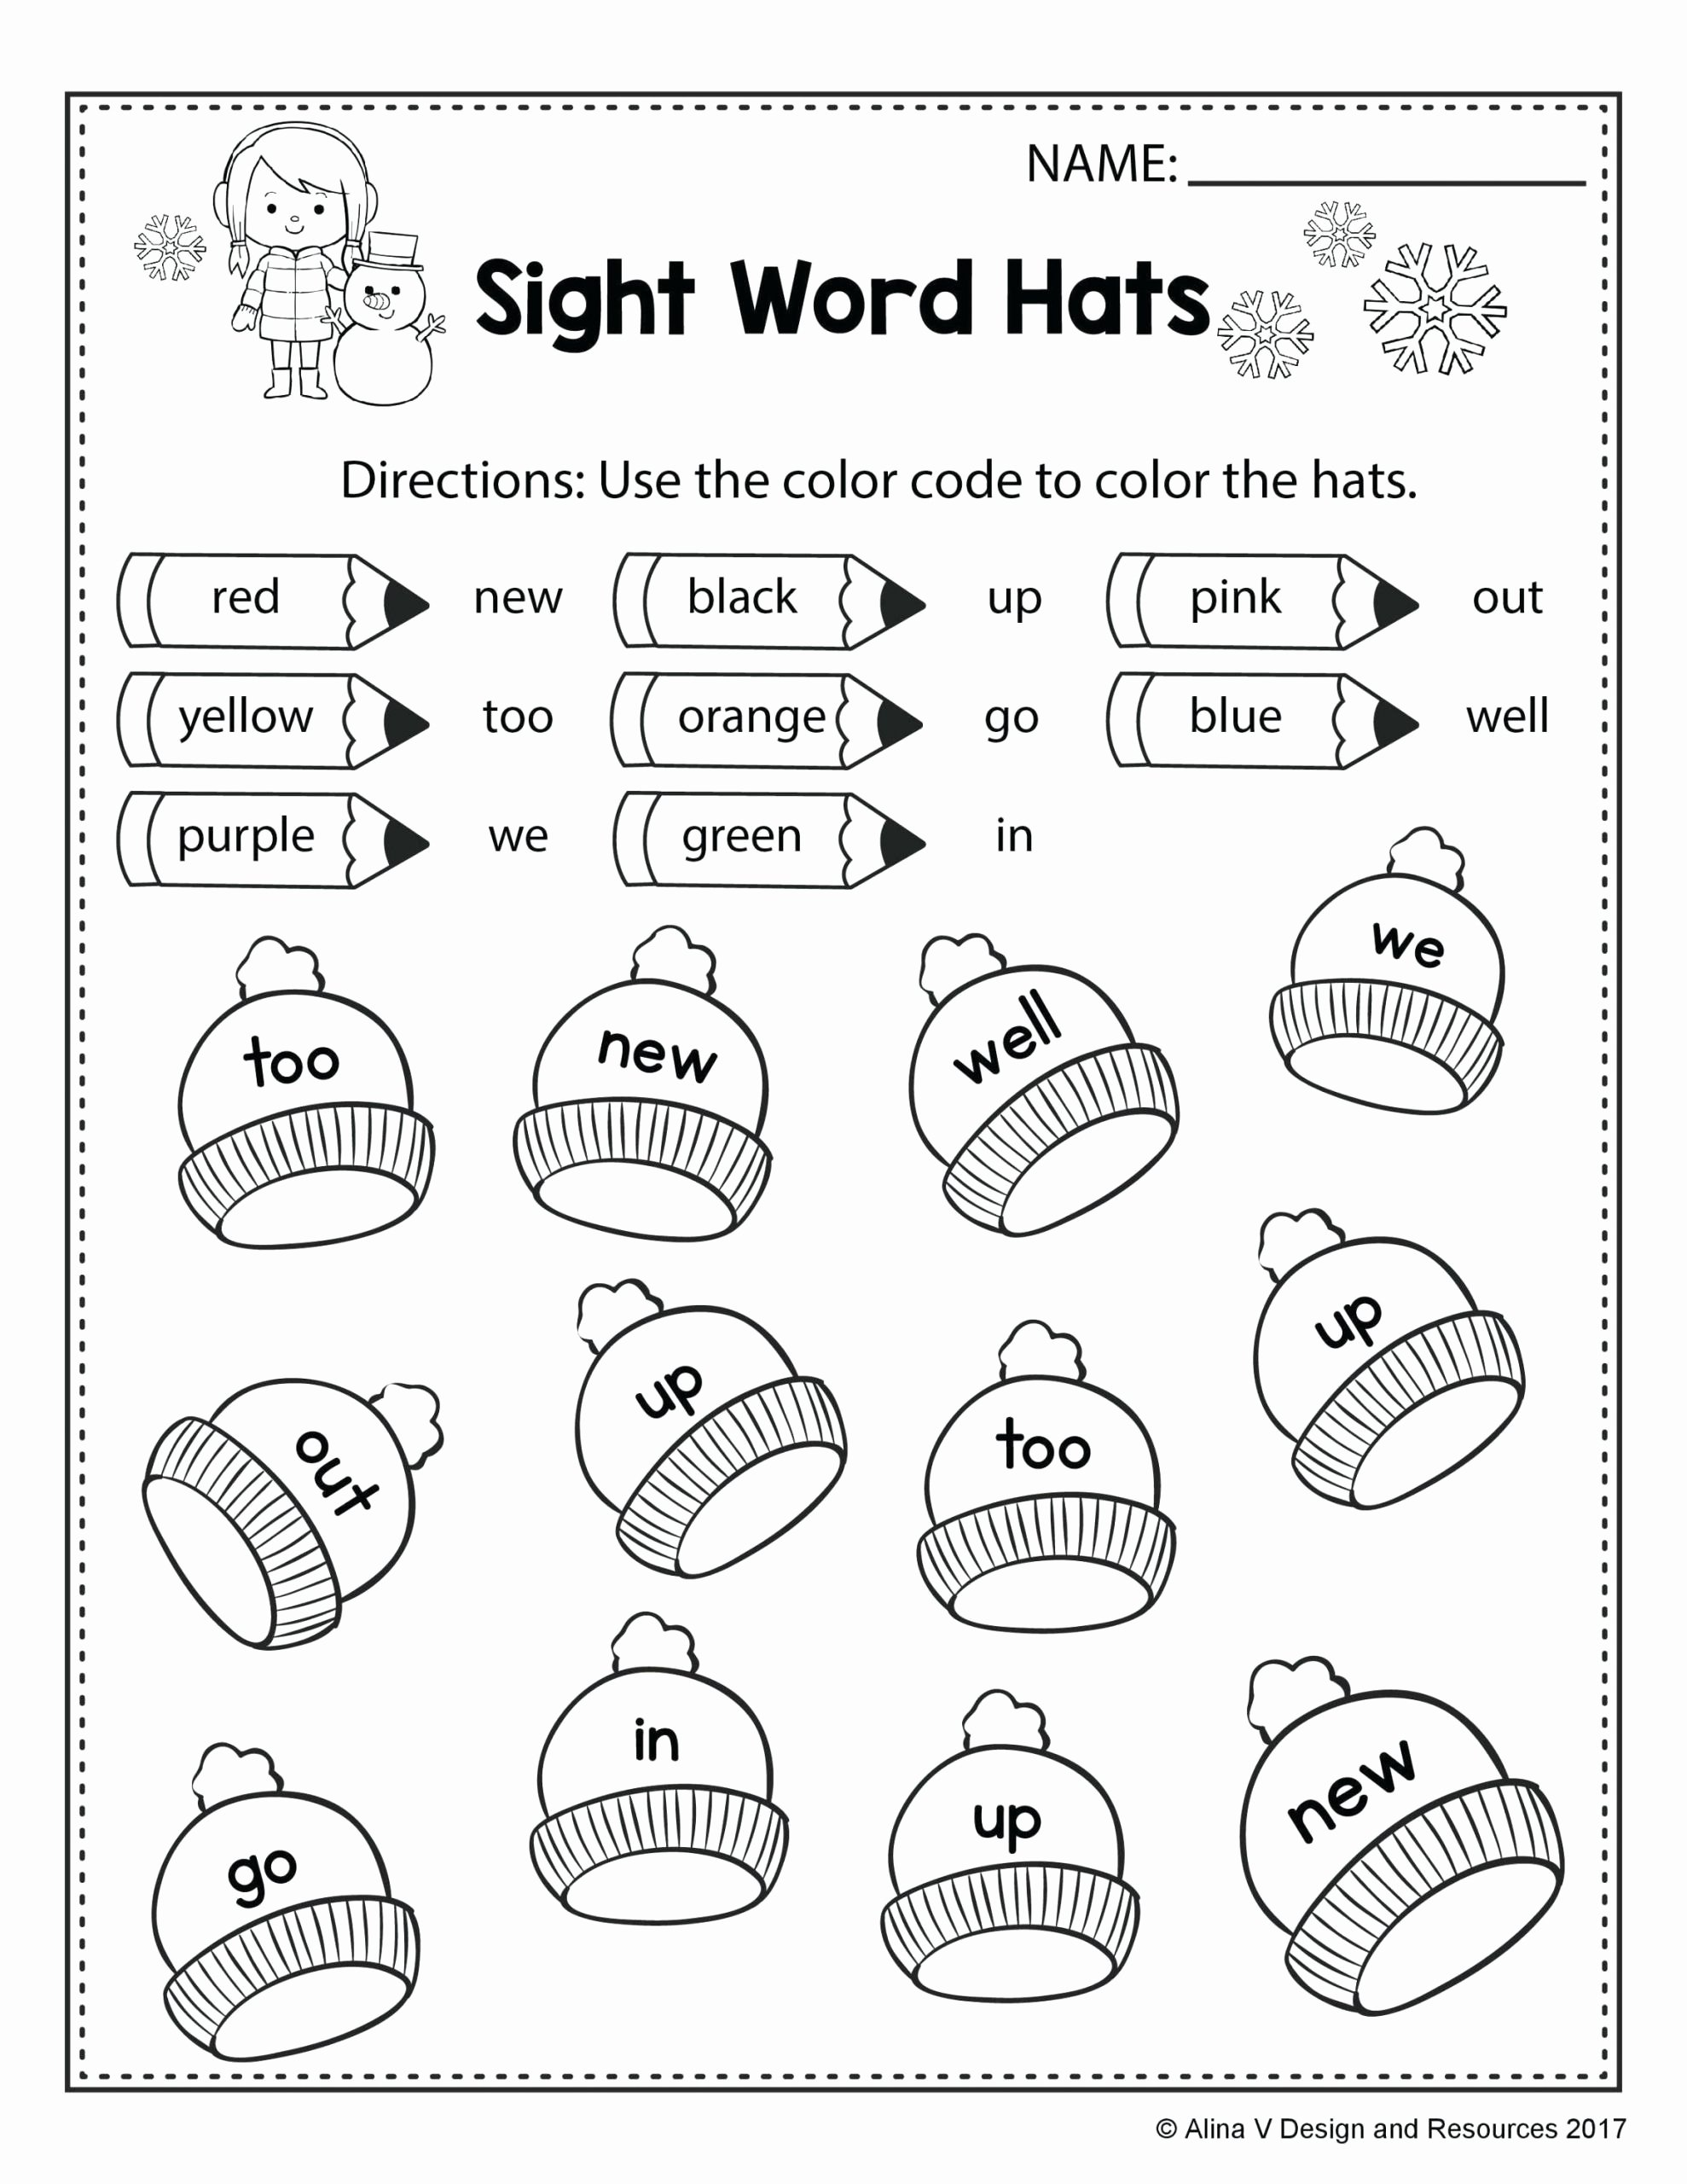 Weather Worksheets for Preschoolers Free 4 Weather Worksheets Preschool for Kids Worksheets Schools